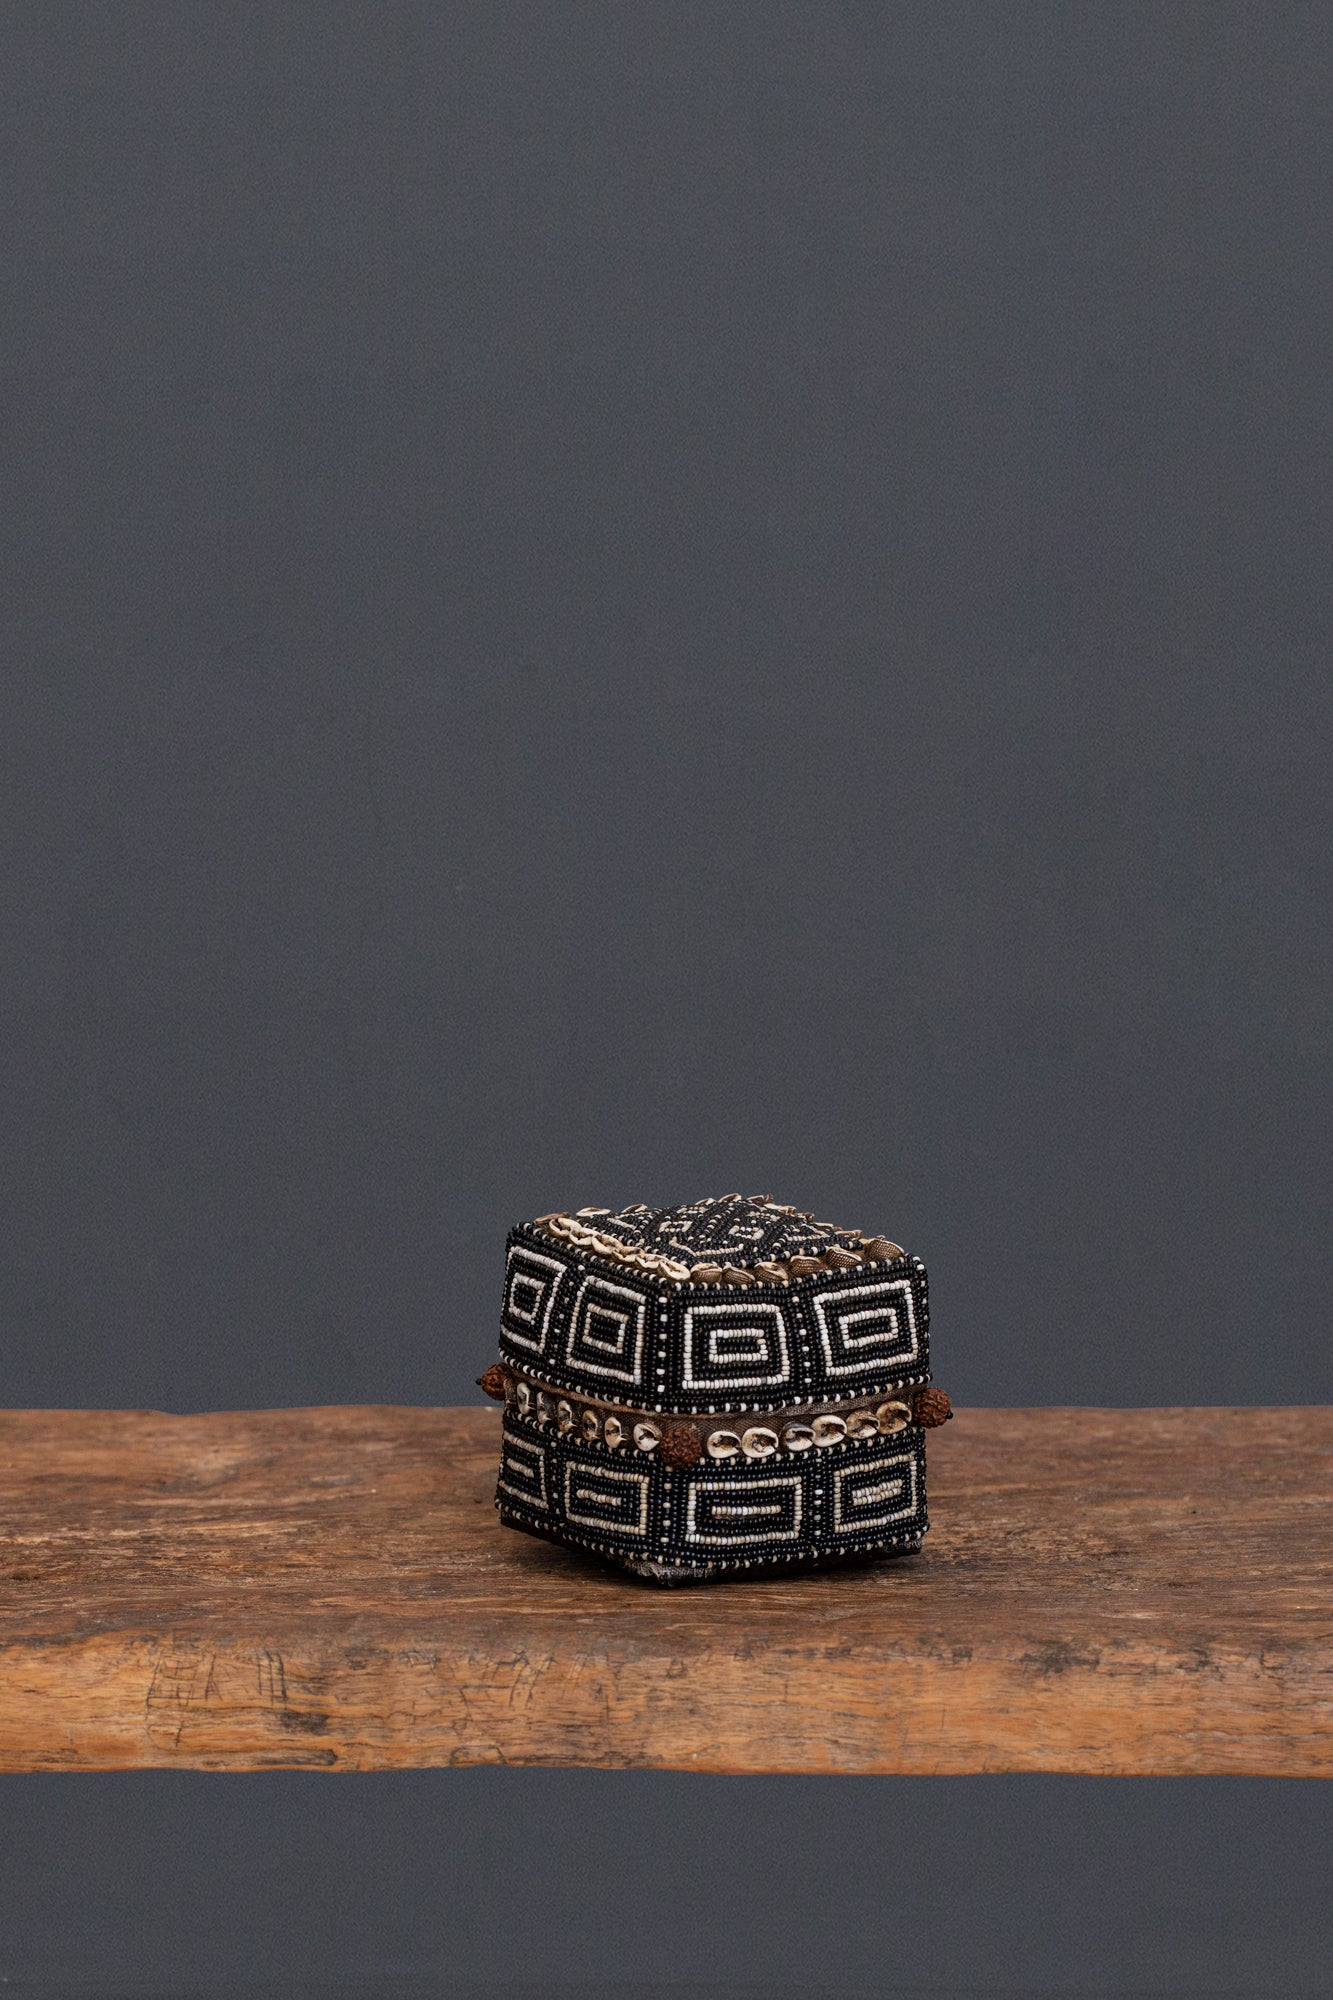 Small Black & White Beaded Offering Box from Sumatra